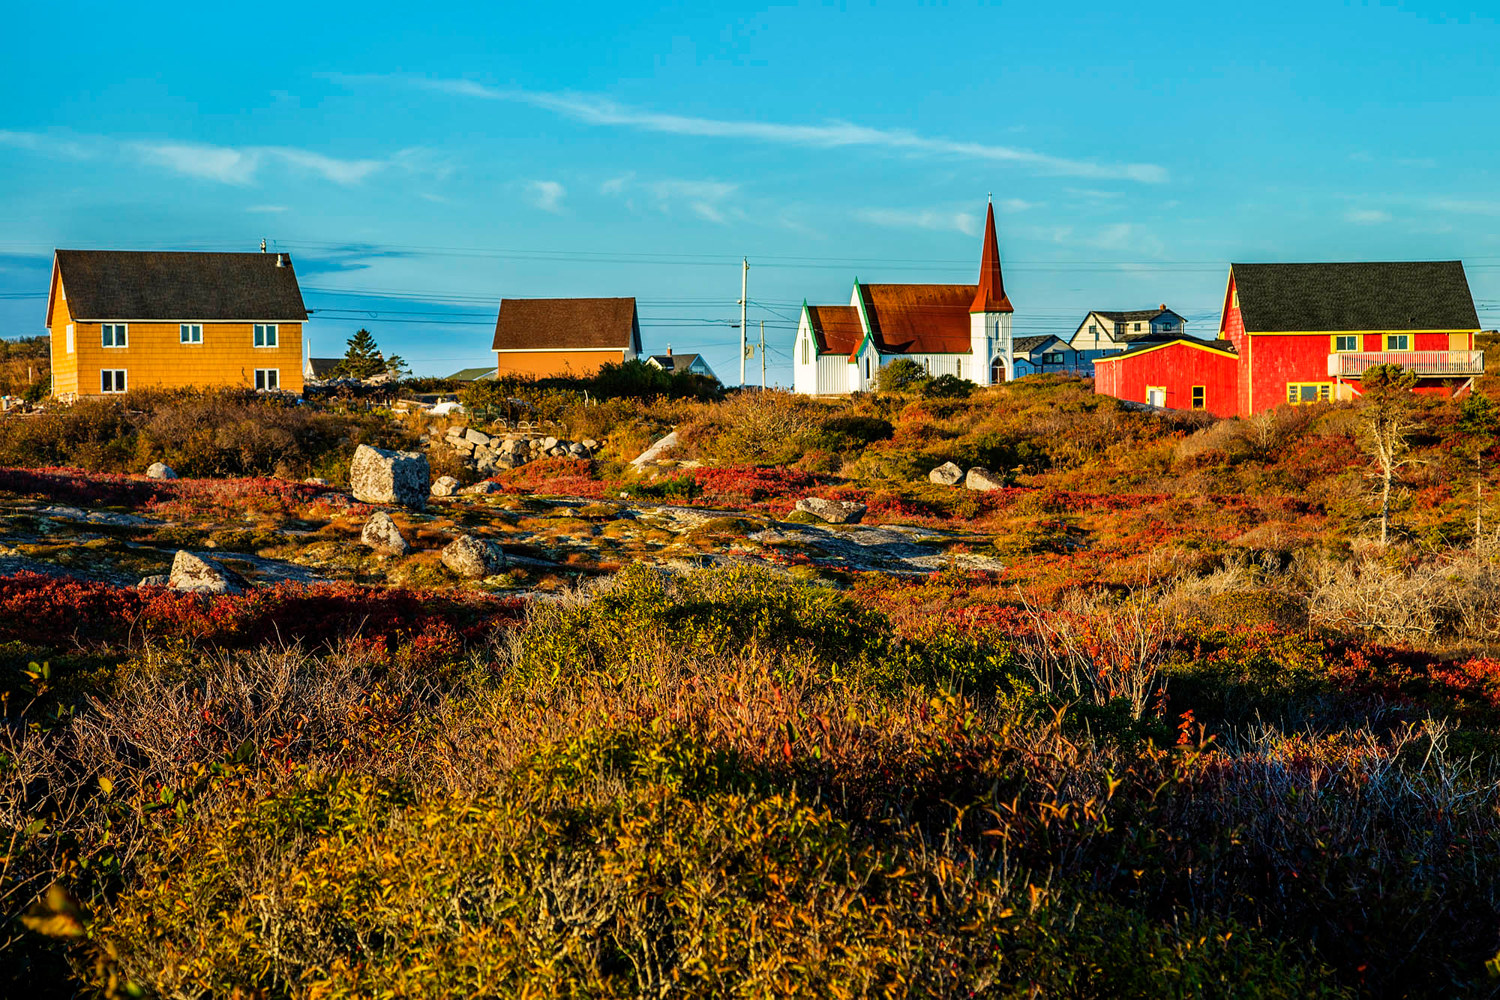 Backside of Peggys Cove by William Kent